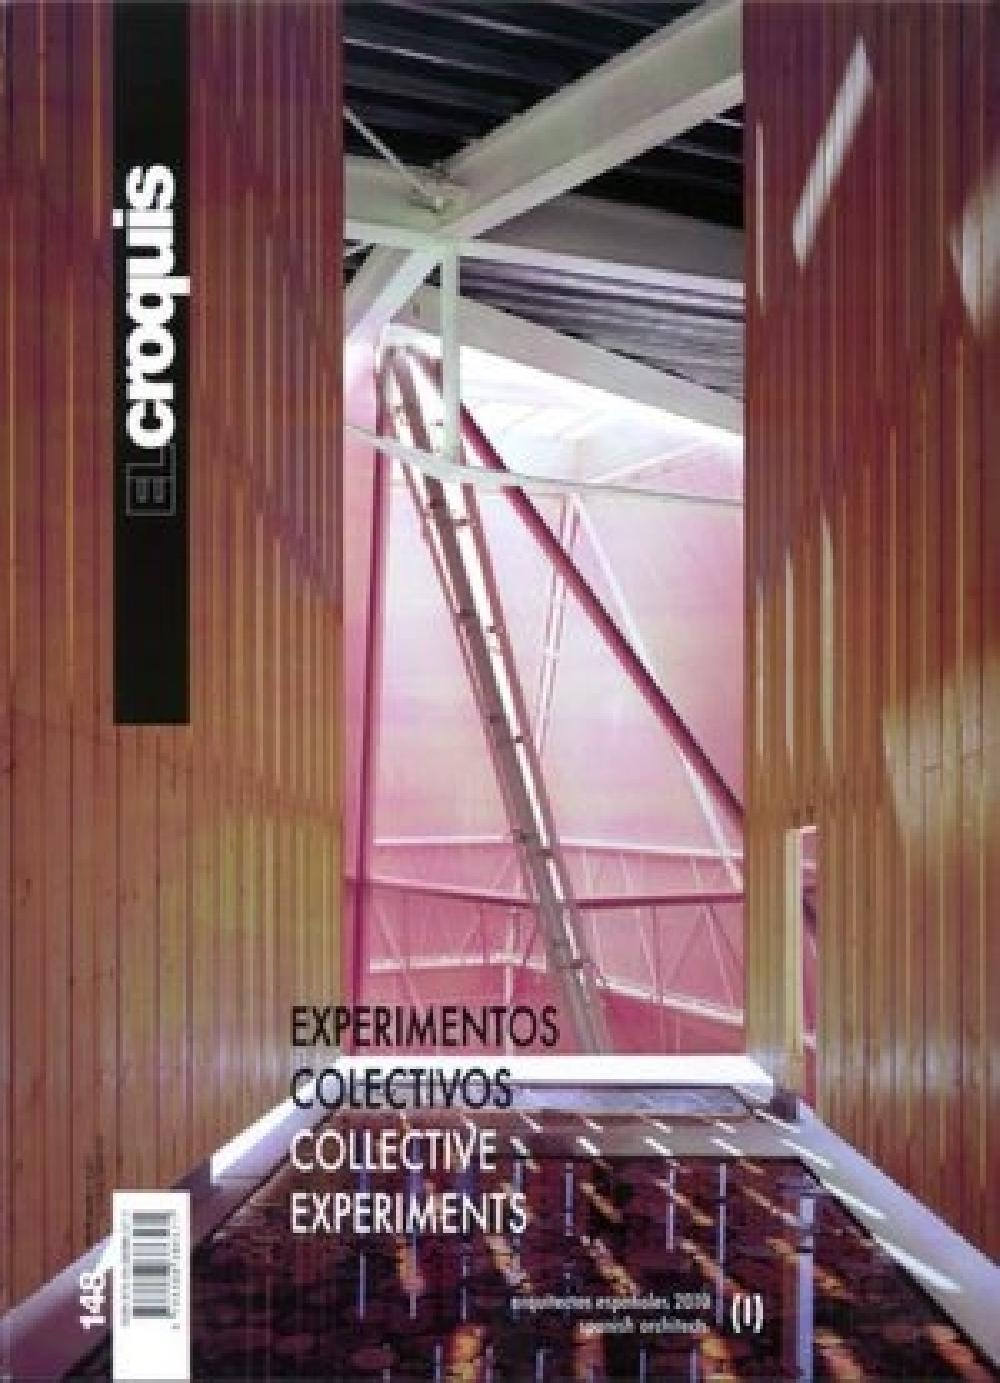 El Croquis 148 - Collective Experiments. Spanish Architects 2010